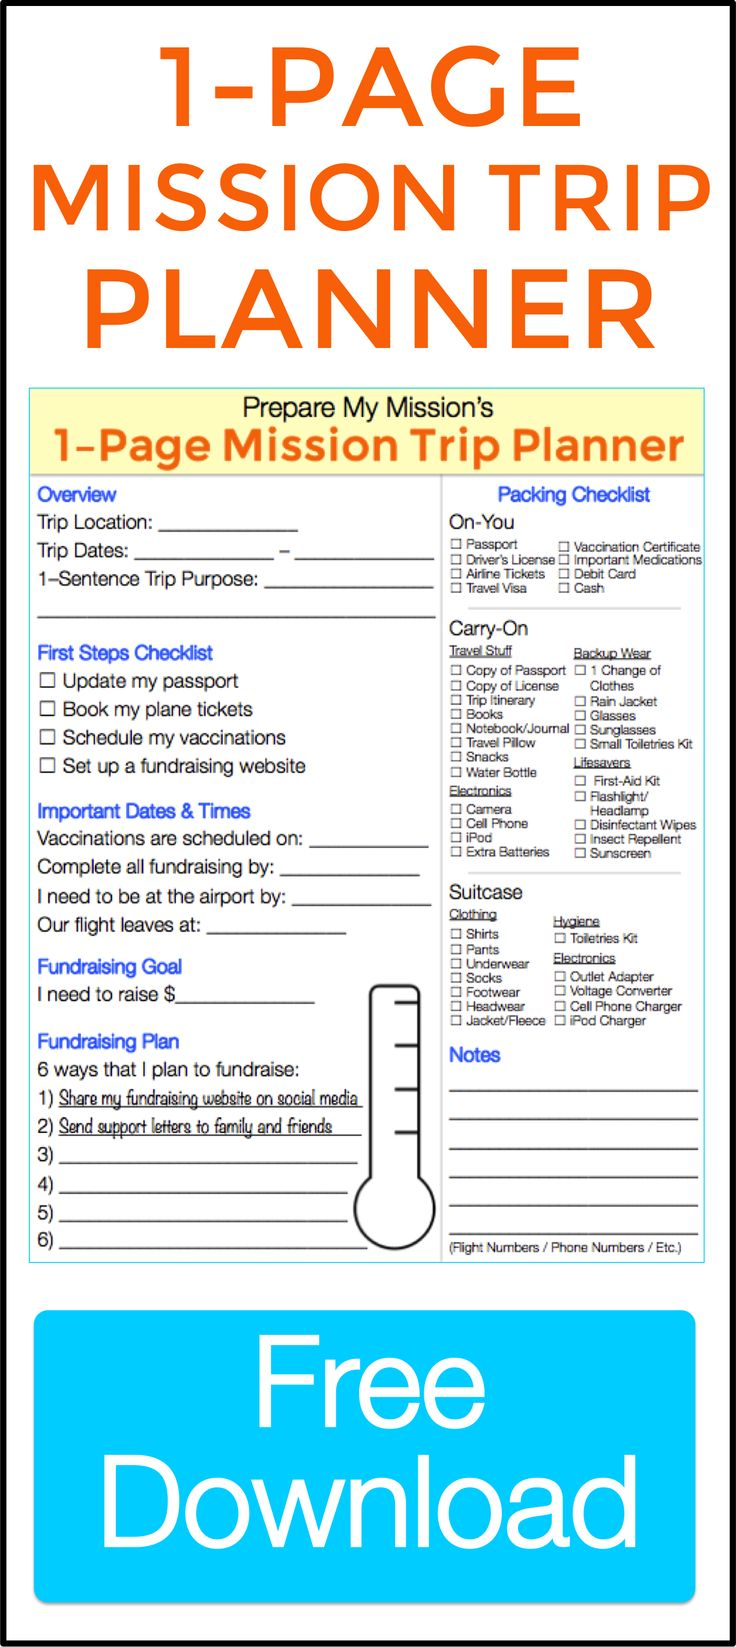 Keep track of all your mission trip details at a glance.